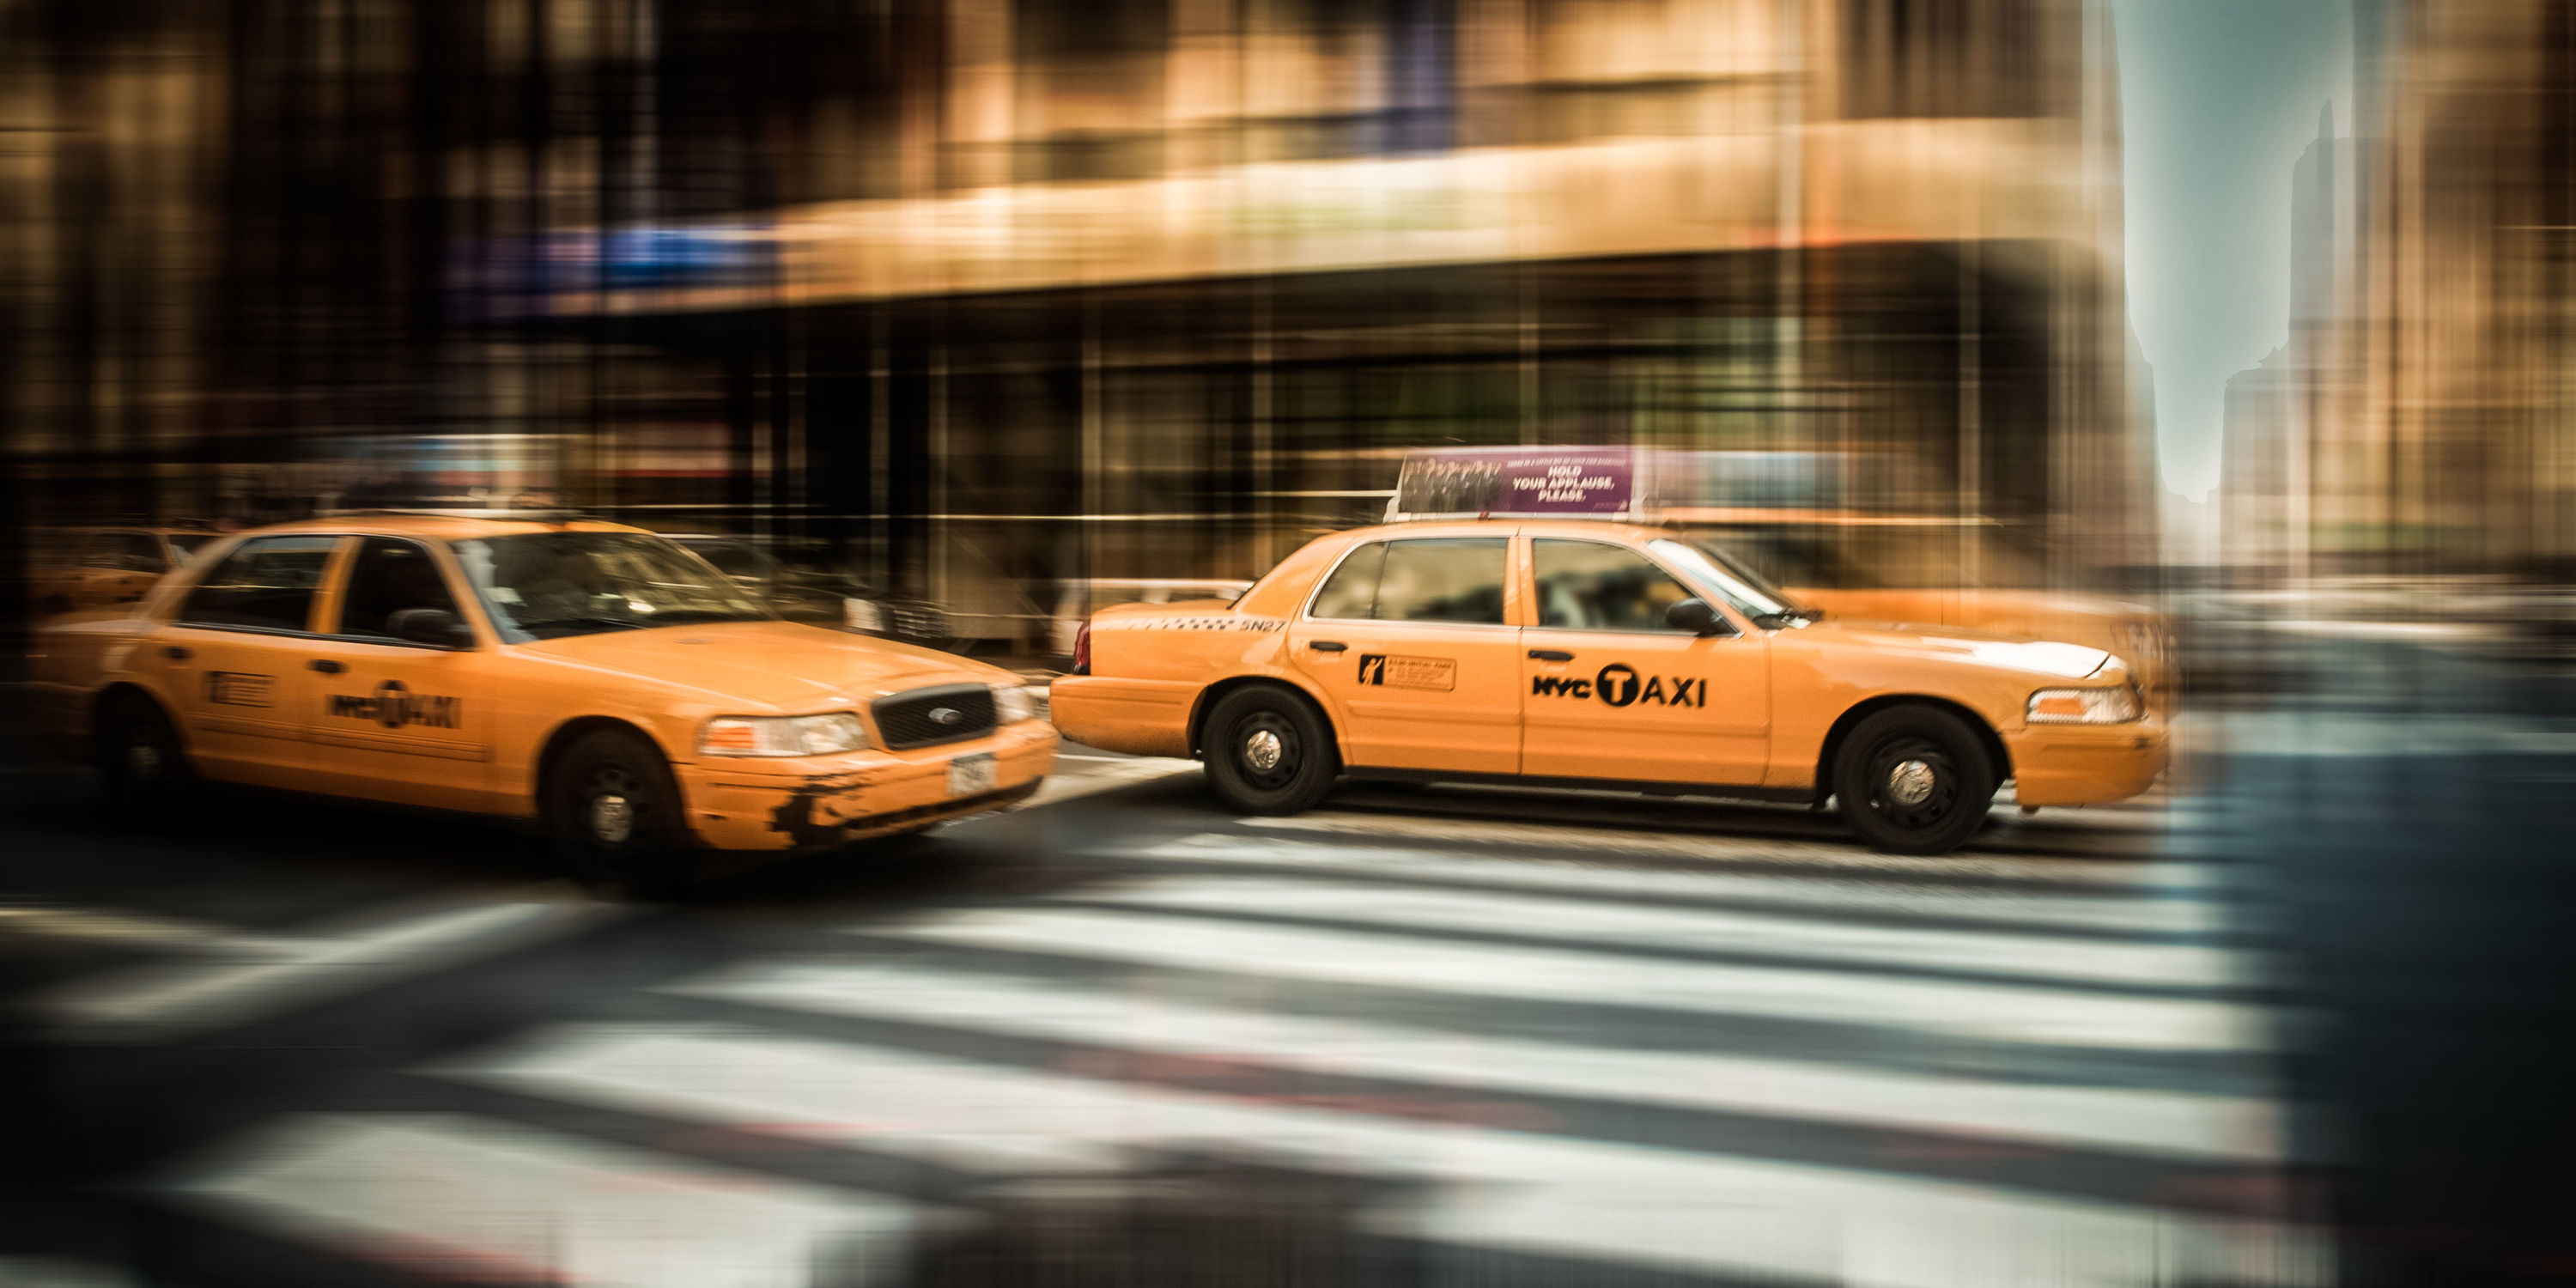 Bild mit Autos, Stadt, New York, USA, Auto, street, Manhattan, Yellow cab, taxi, Taxis, New York City, NYC, Gelbe Taxis, car, cars, cab, gelbes taxi